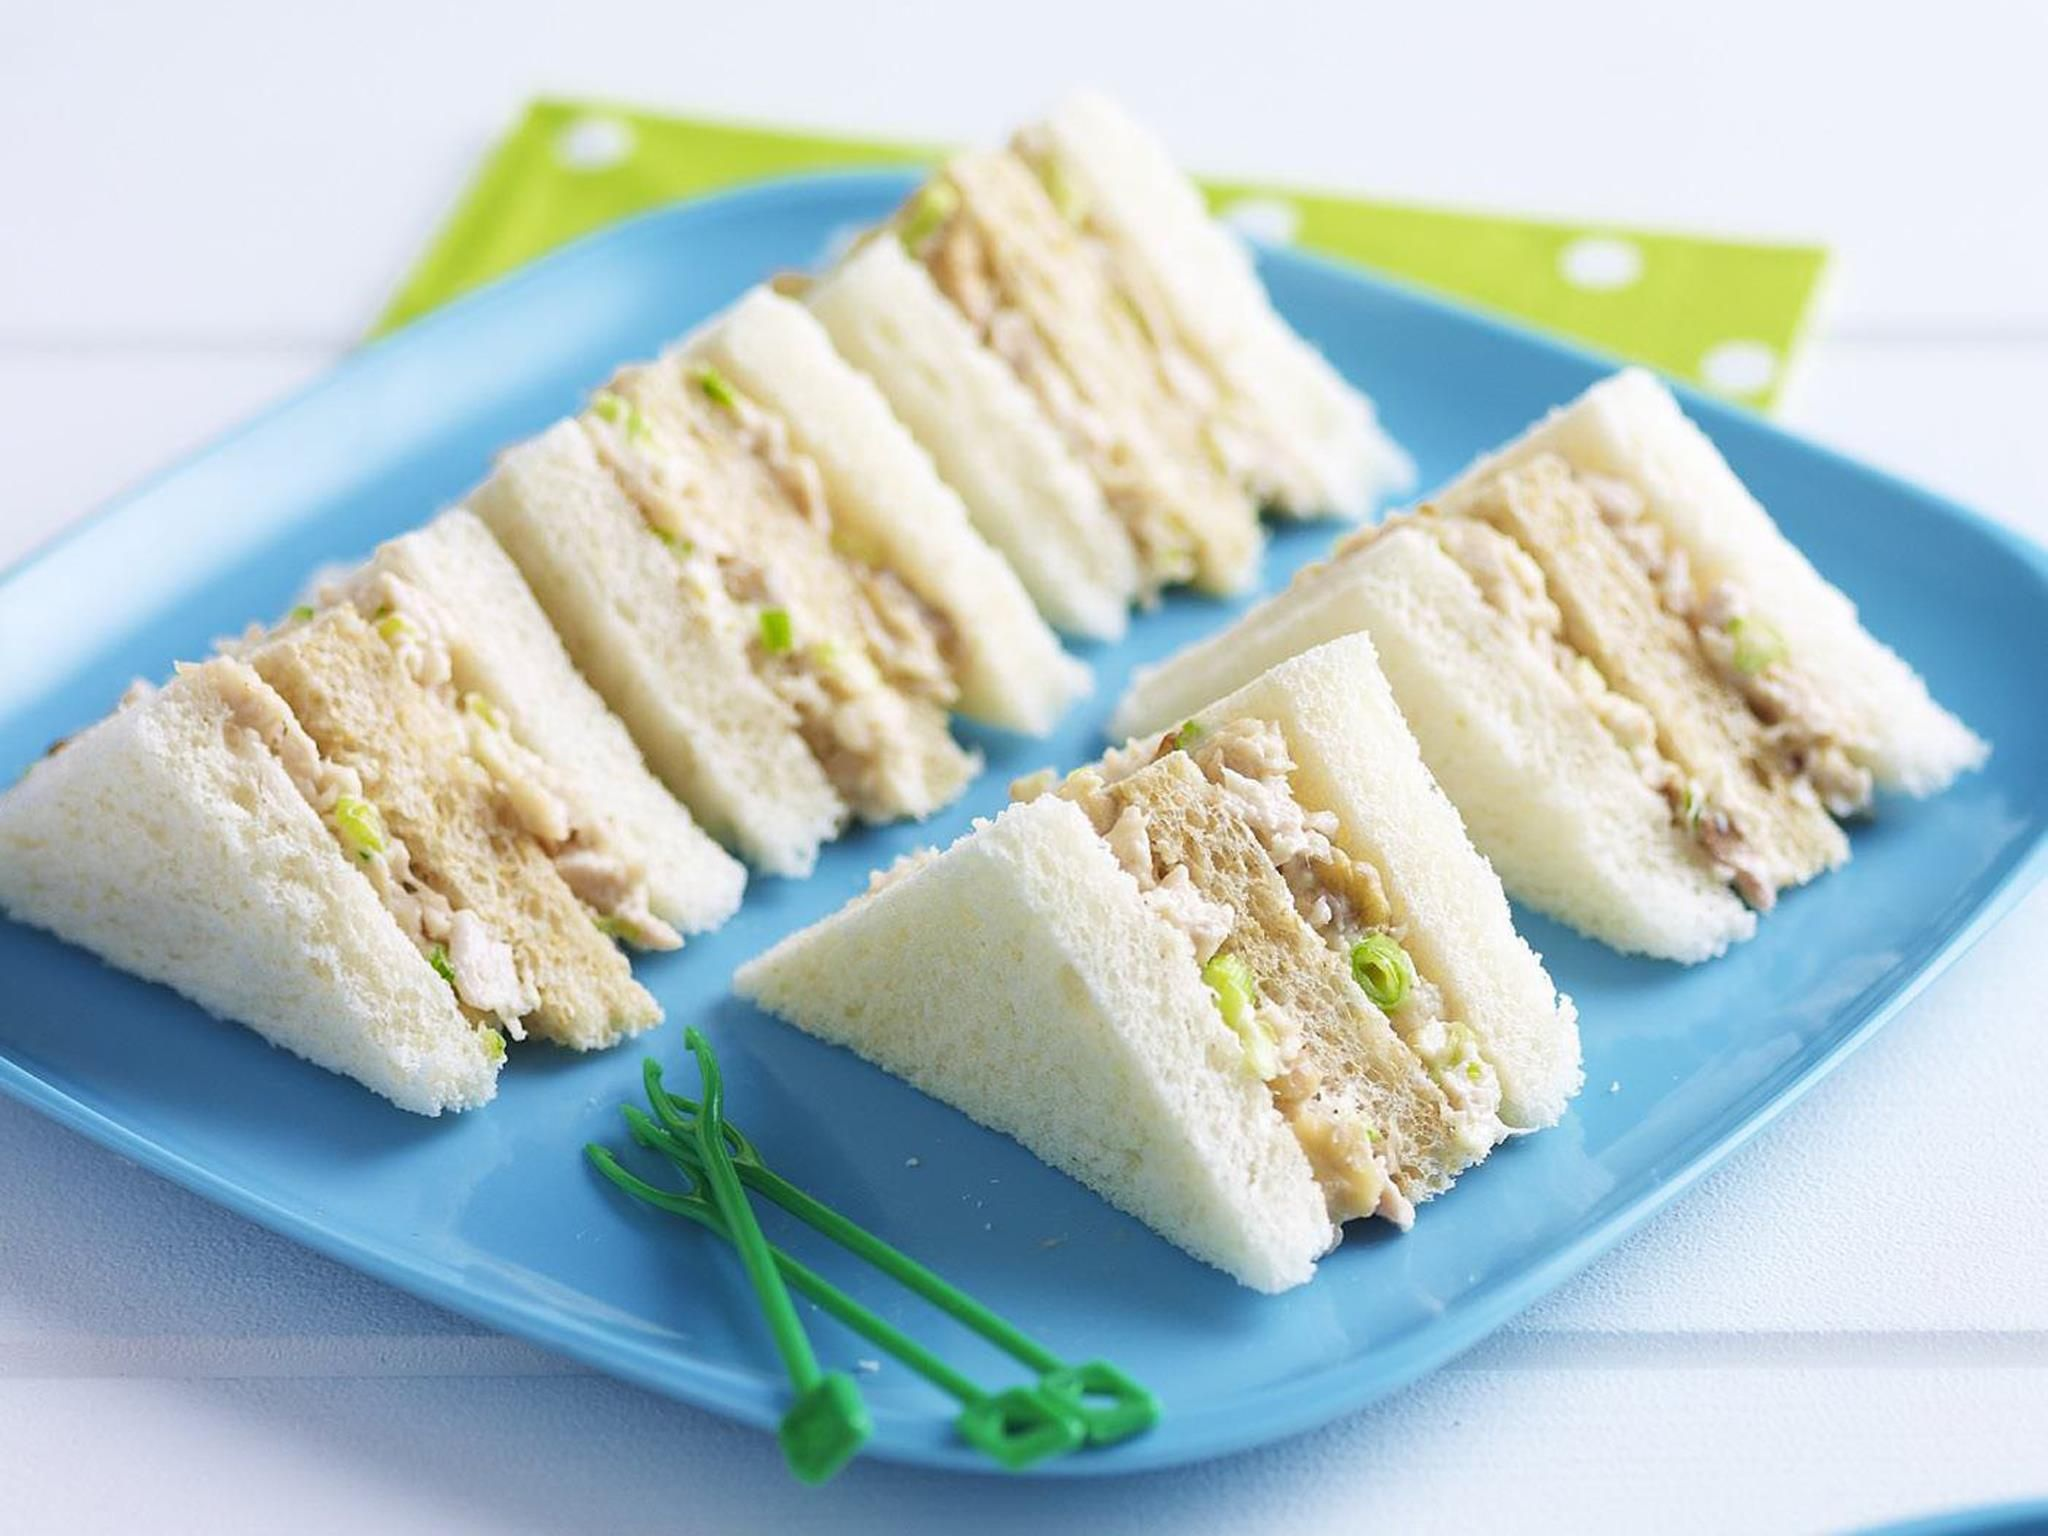 Chicken Mayo Celery And Walnut Sandwiches Recipe Tea Party Sandwiches Food Delicious Sandwiches